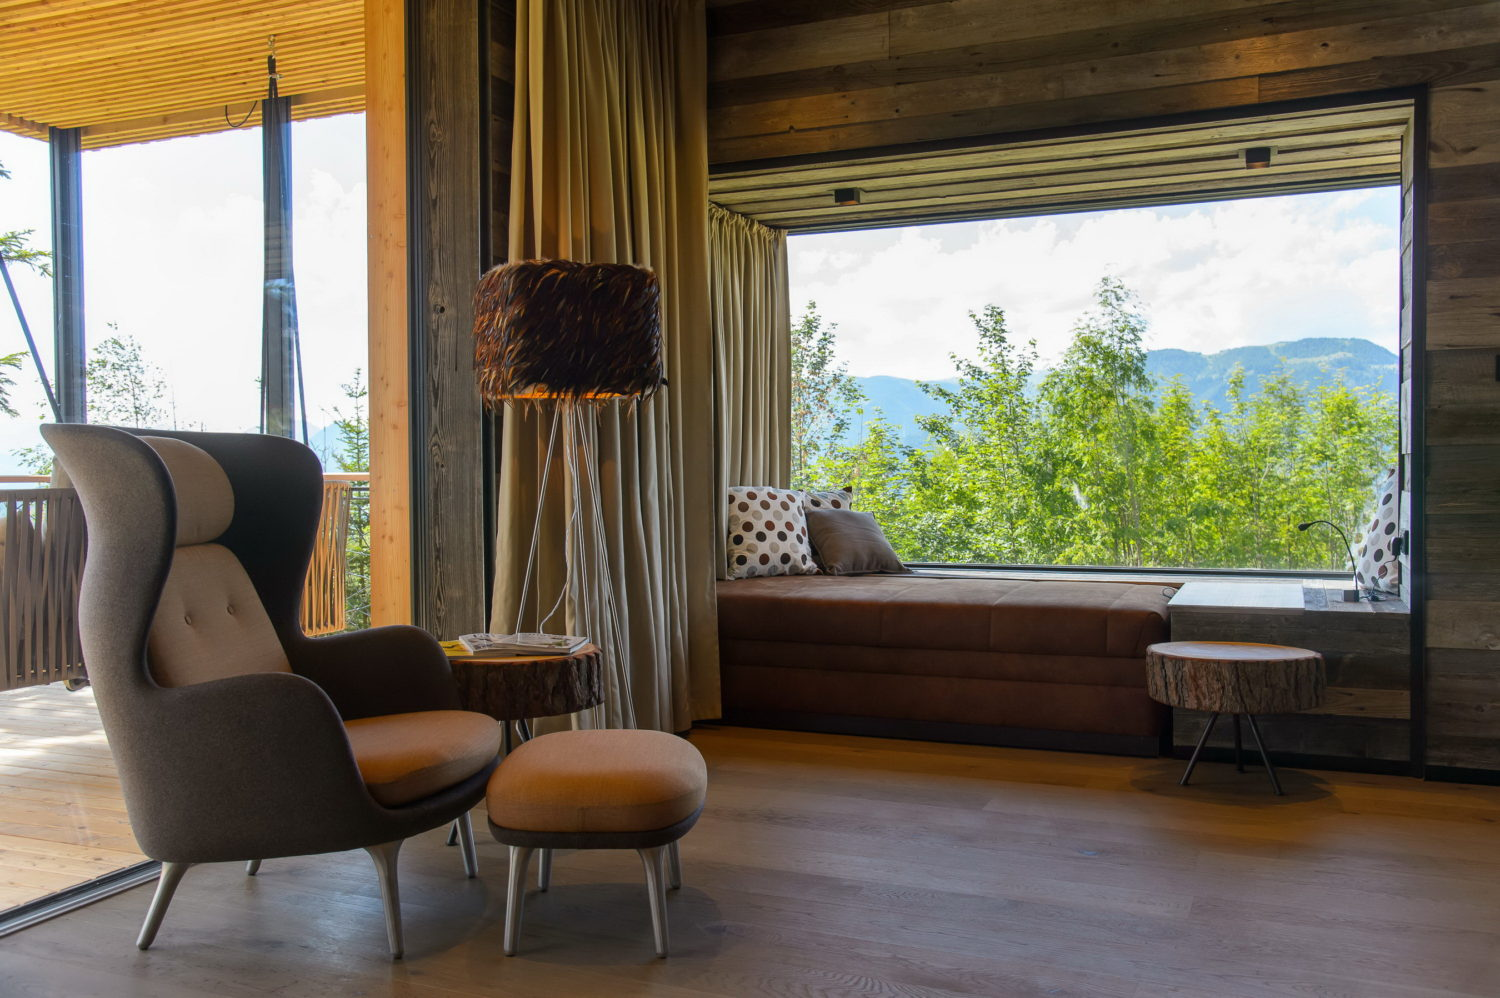 Deluxe Mountain Chalets by Viereck Architects